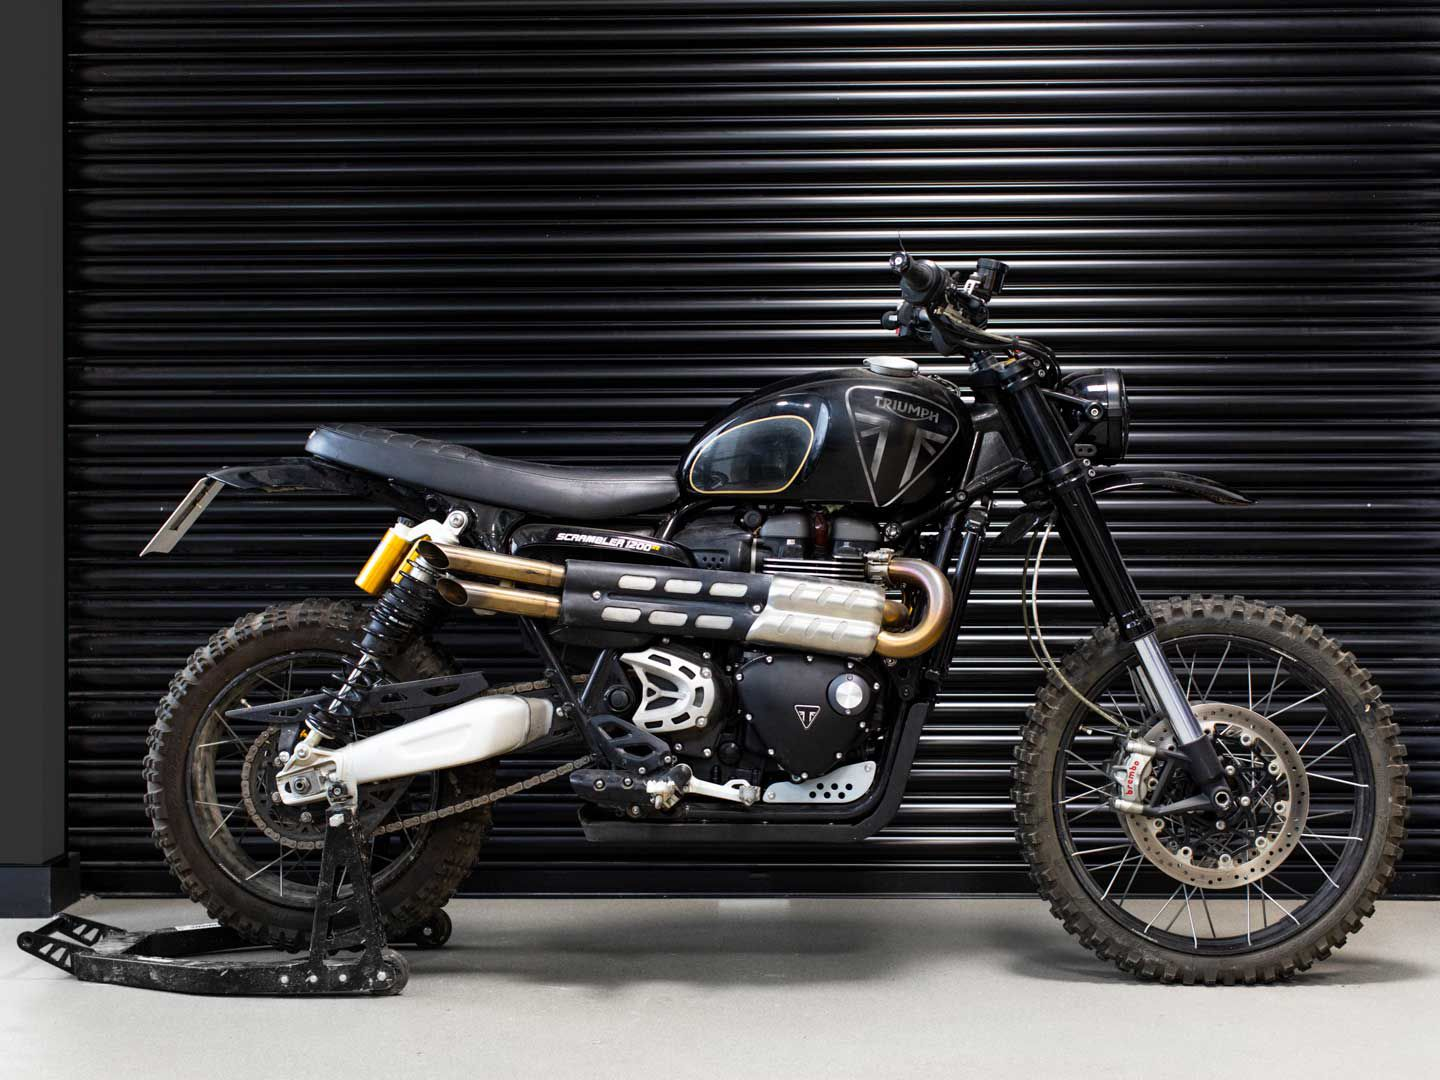 Now this looks like something Steve McQueen would ride! The Scrambler 1200 has already proved itself in stock trim at the NORRA Mexican 1000, so it should suit James Bond just fine.